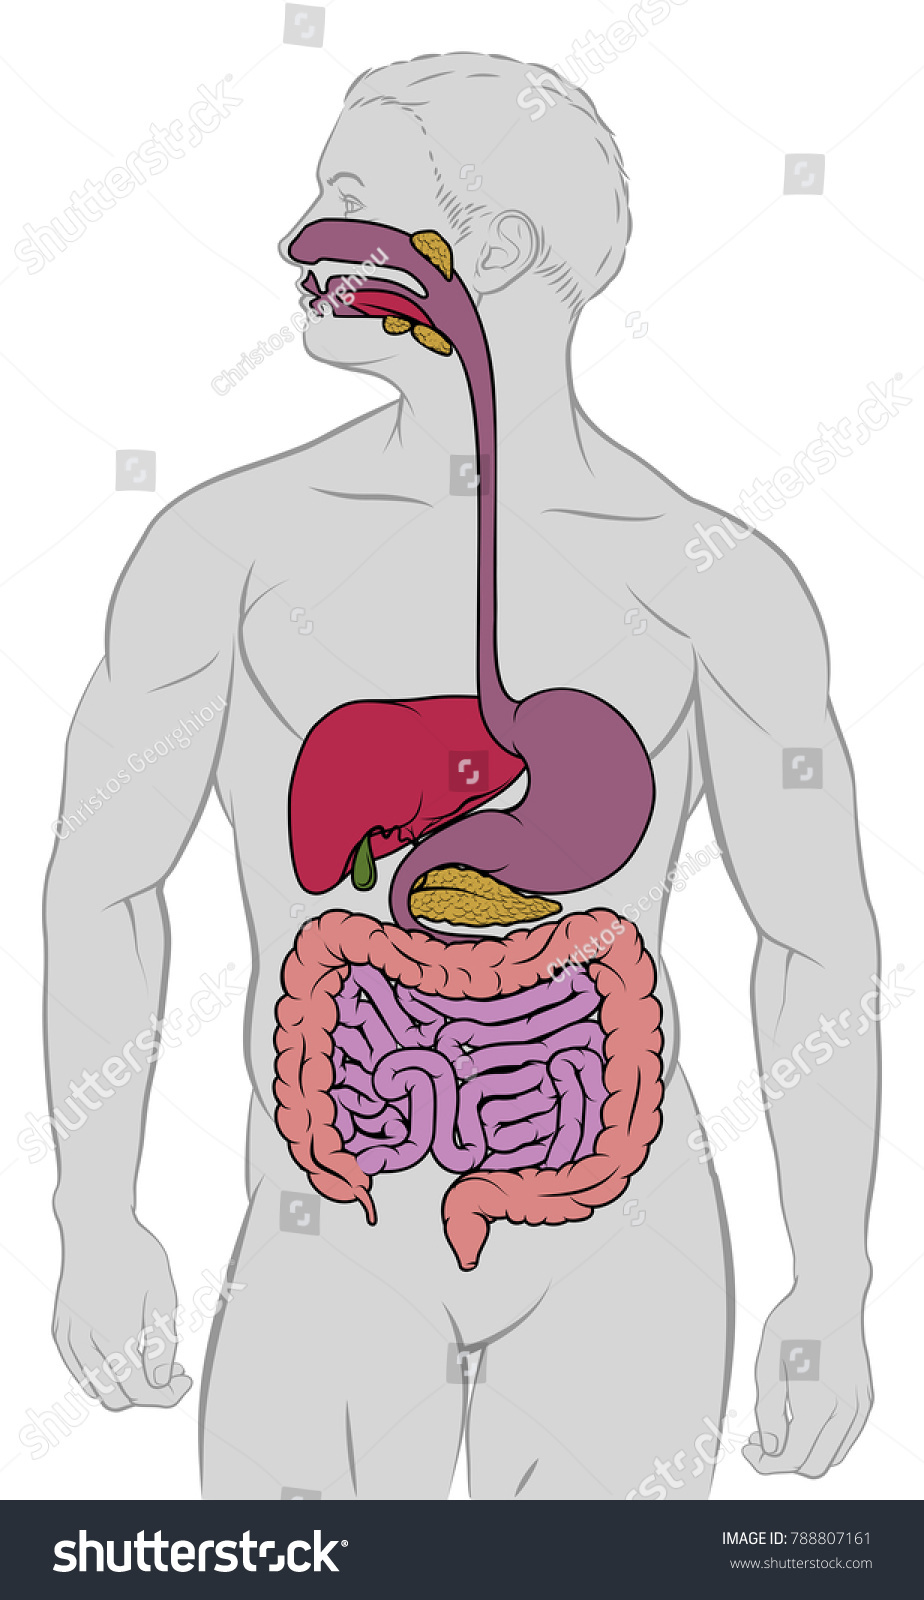 Human Gut Diagram House Wiring Diagram Symbols